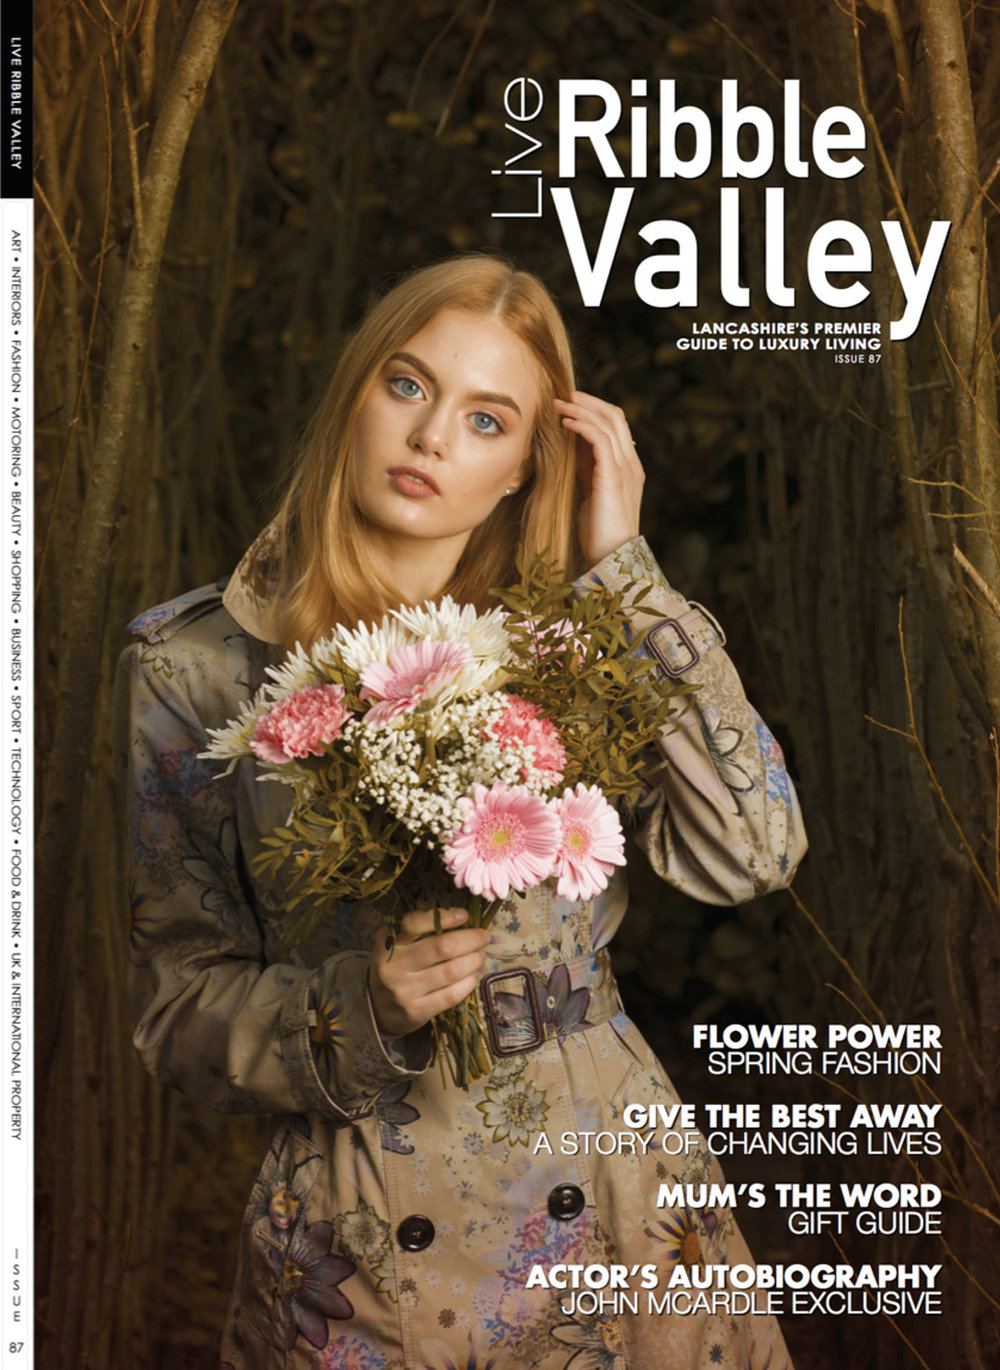 Live_Ribble_Valley_magazine_Tengri.jpg